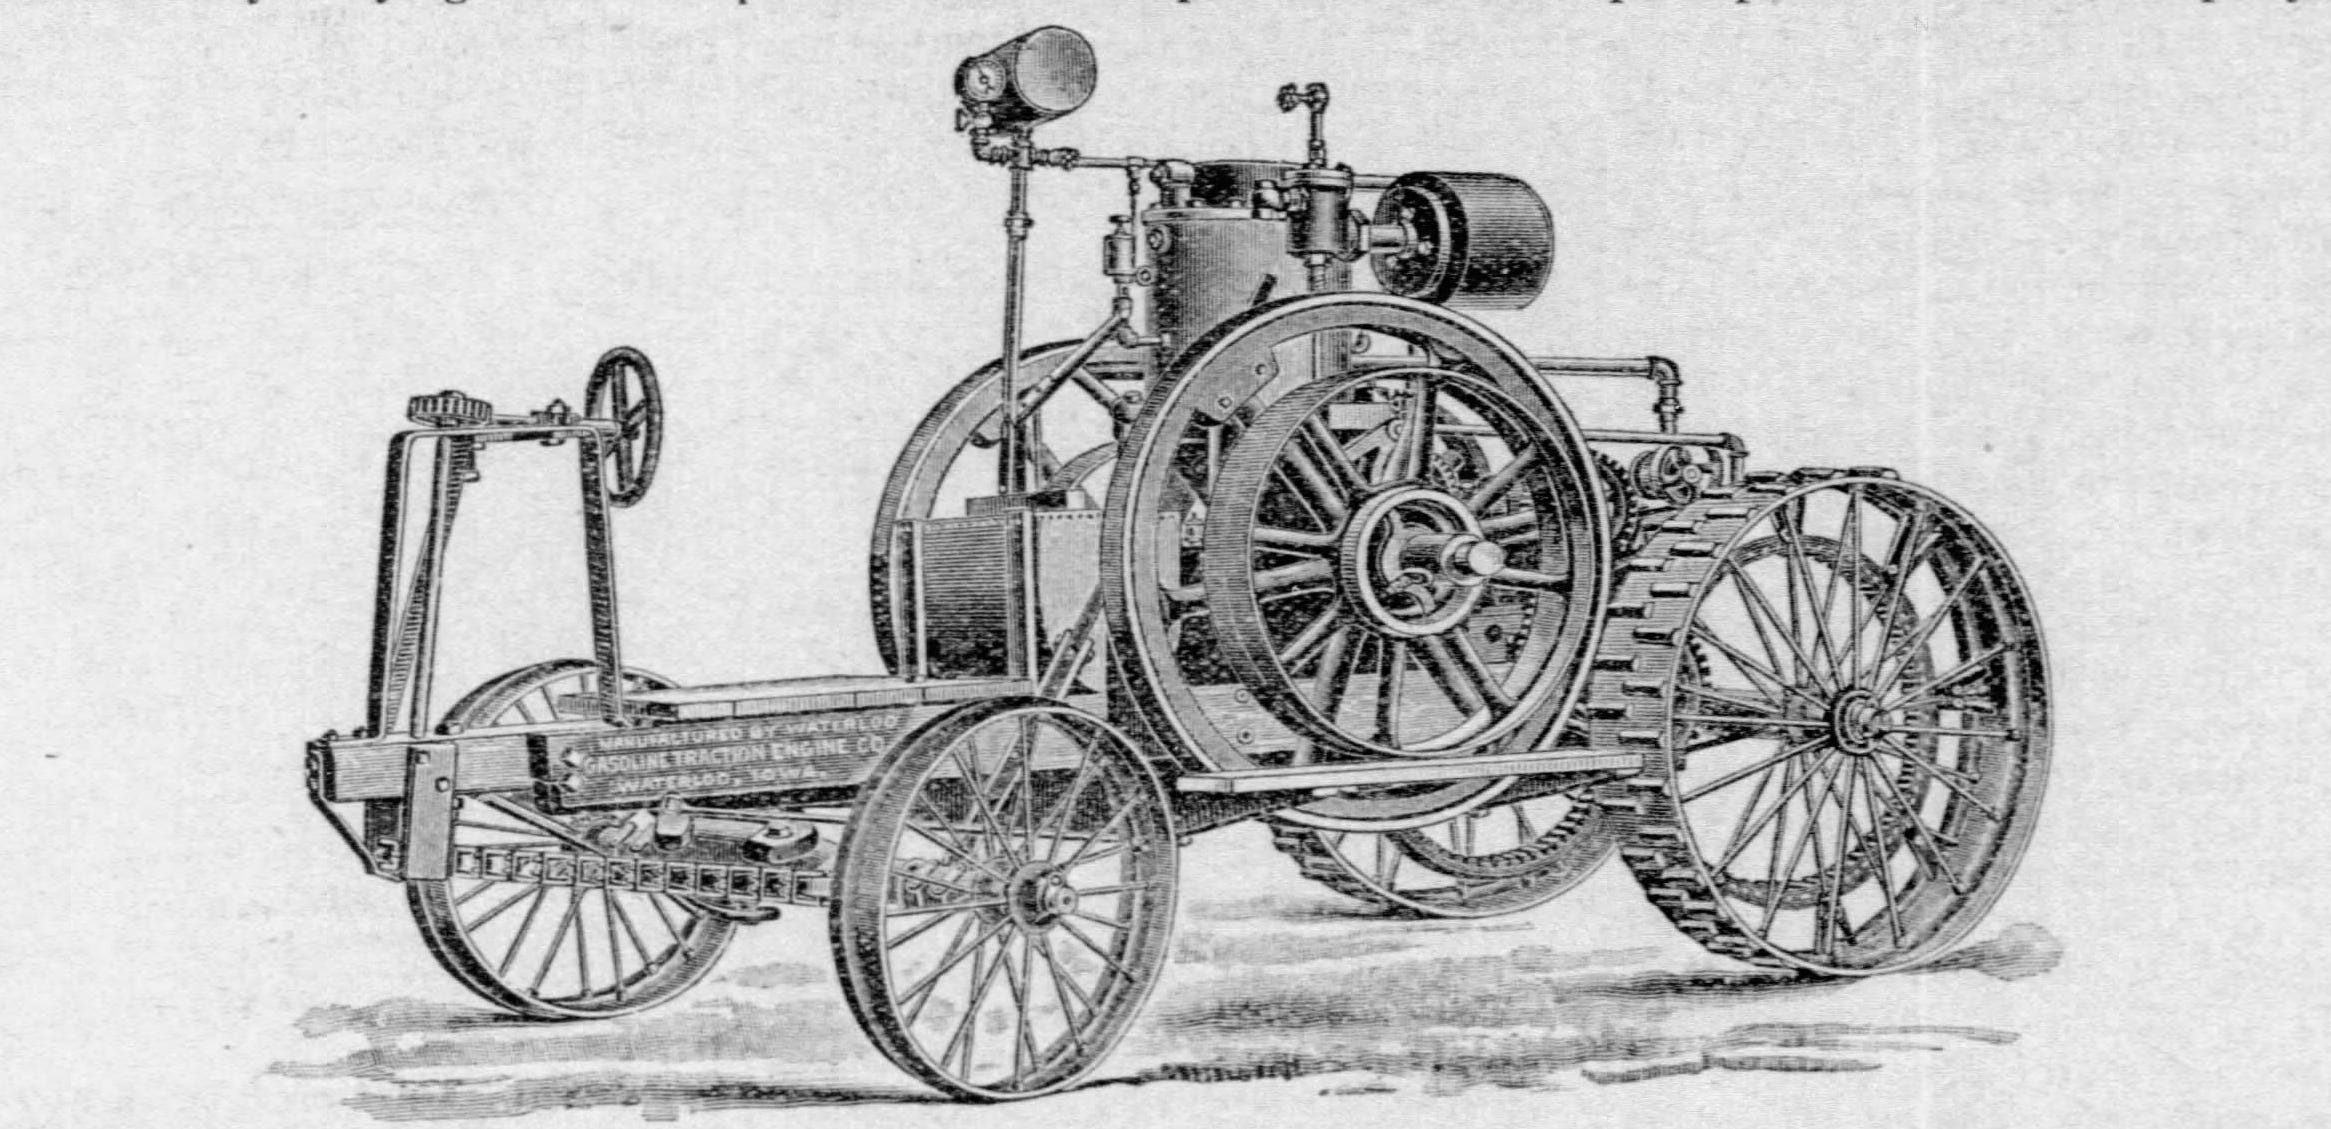 John Froelich's tractor moved on its own power but consisted primarily of a gasoline engine mounted on a steel frame.